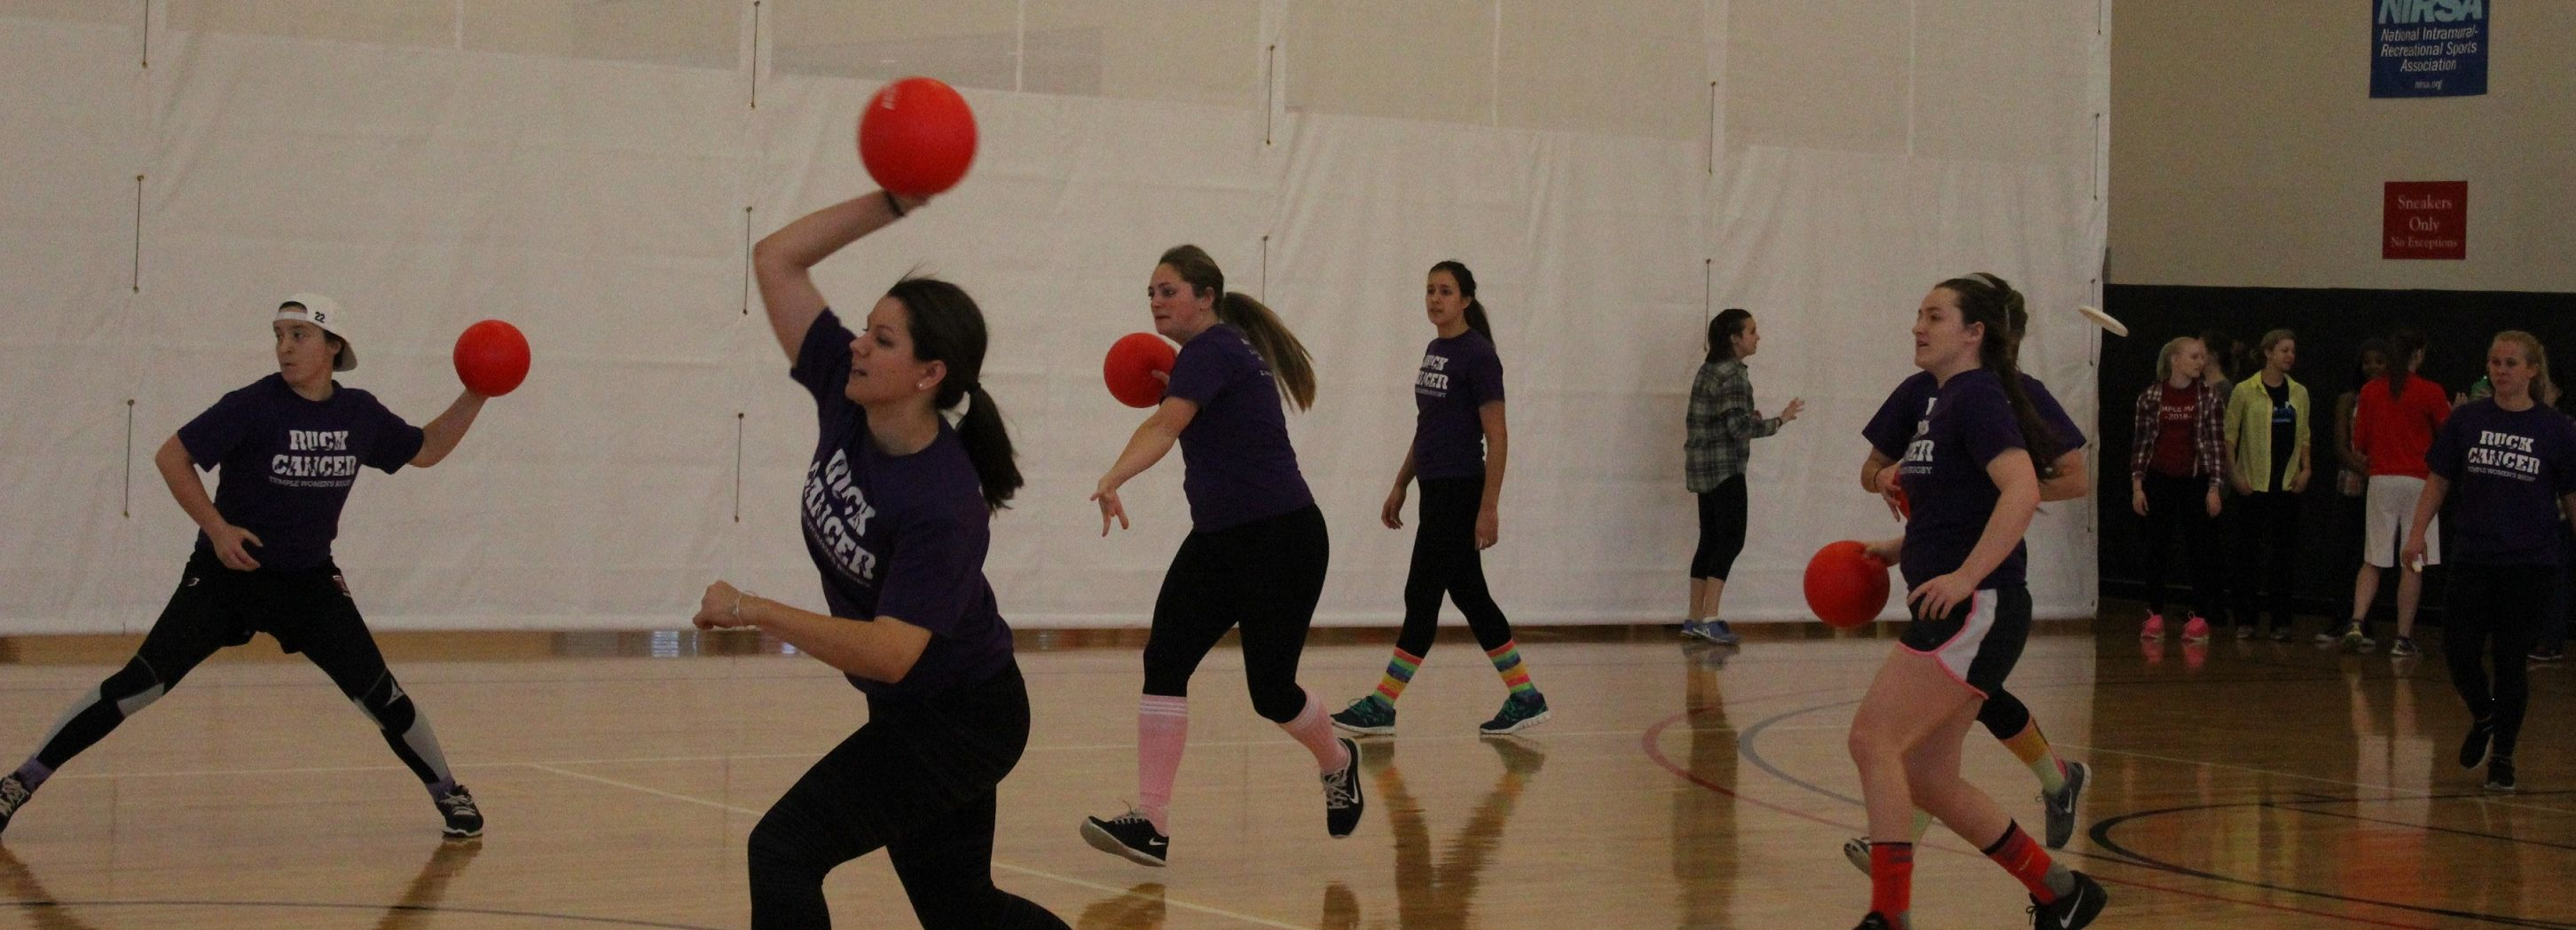 A team in purple throws red dodgeballs.